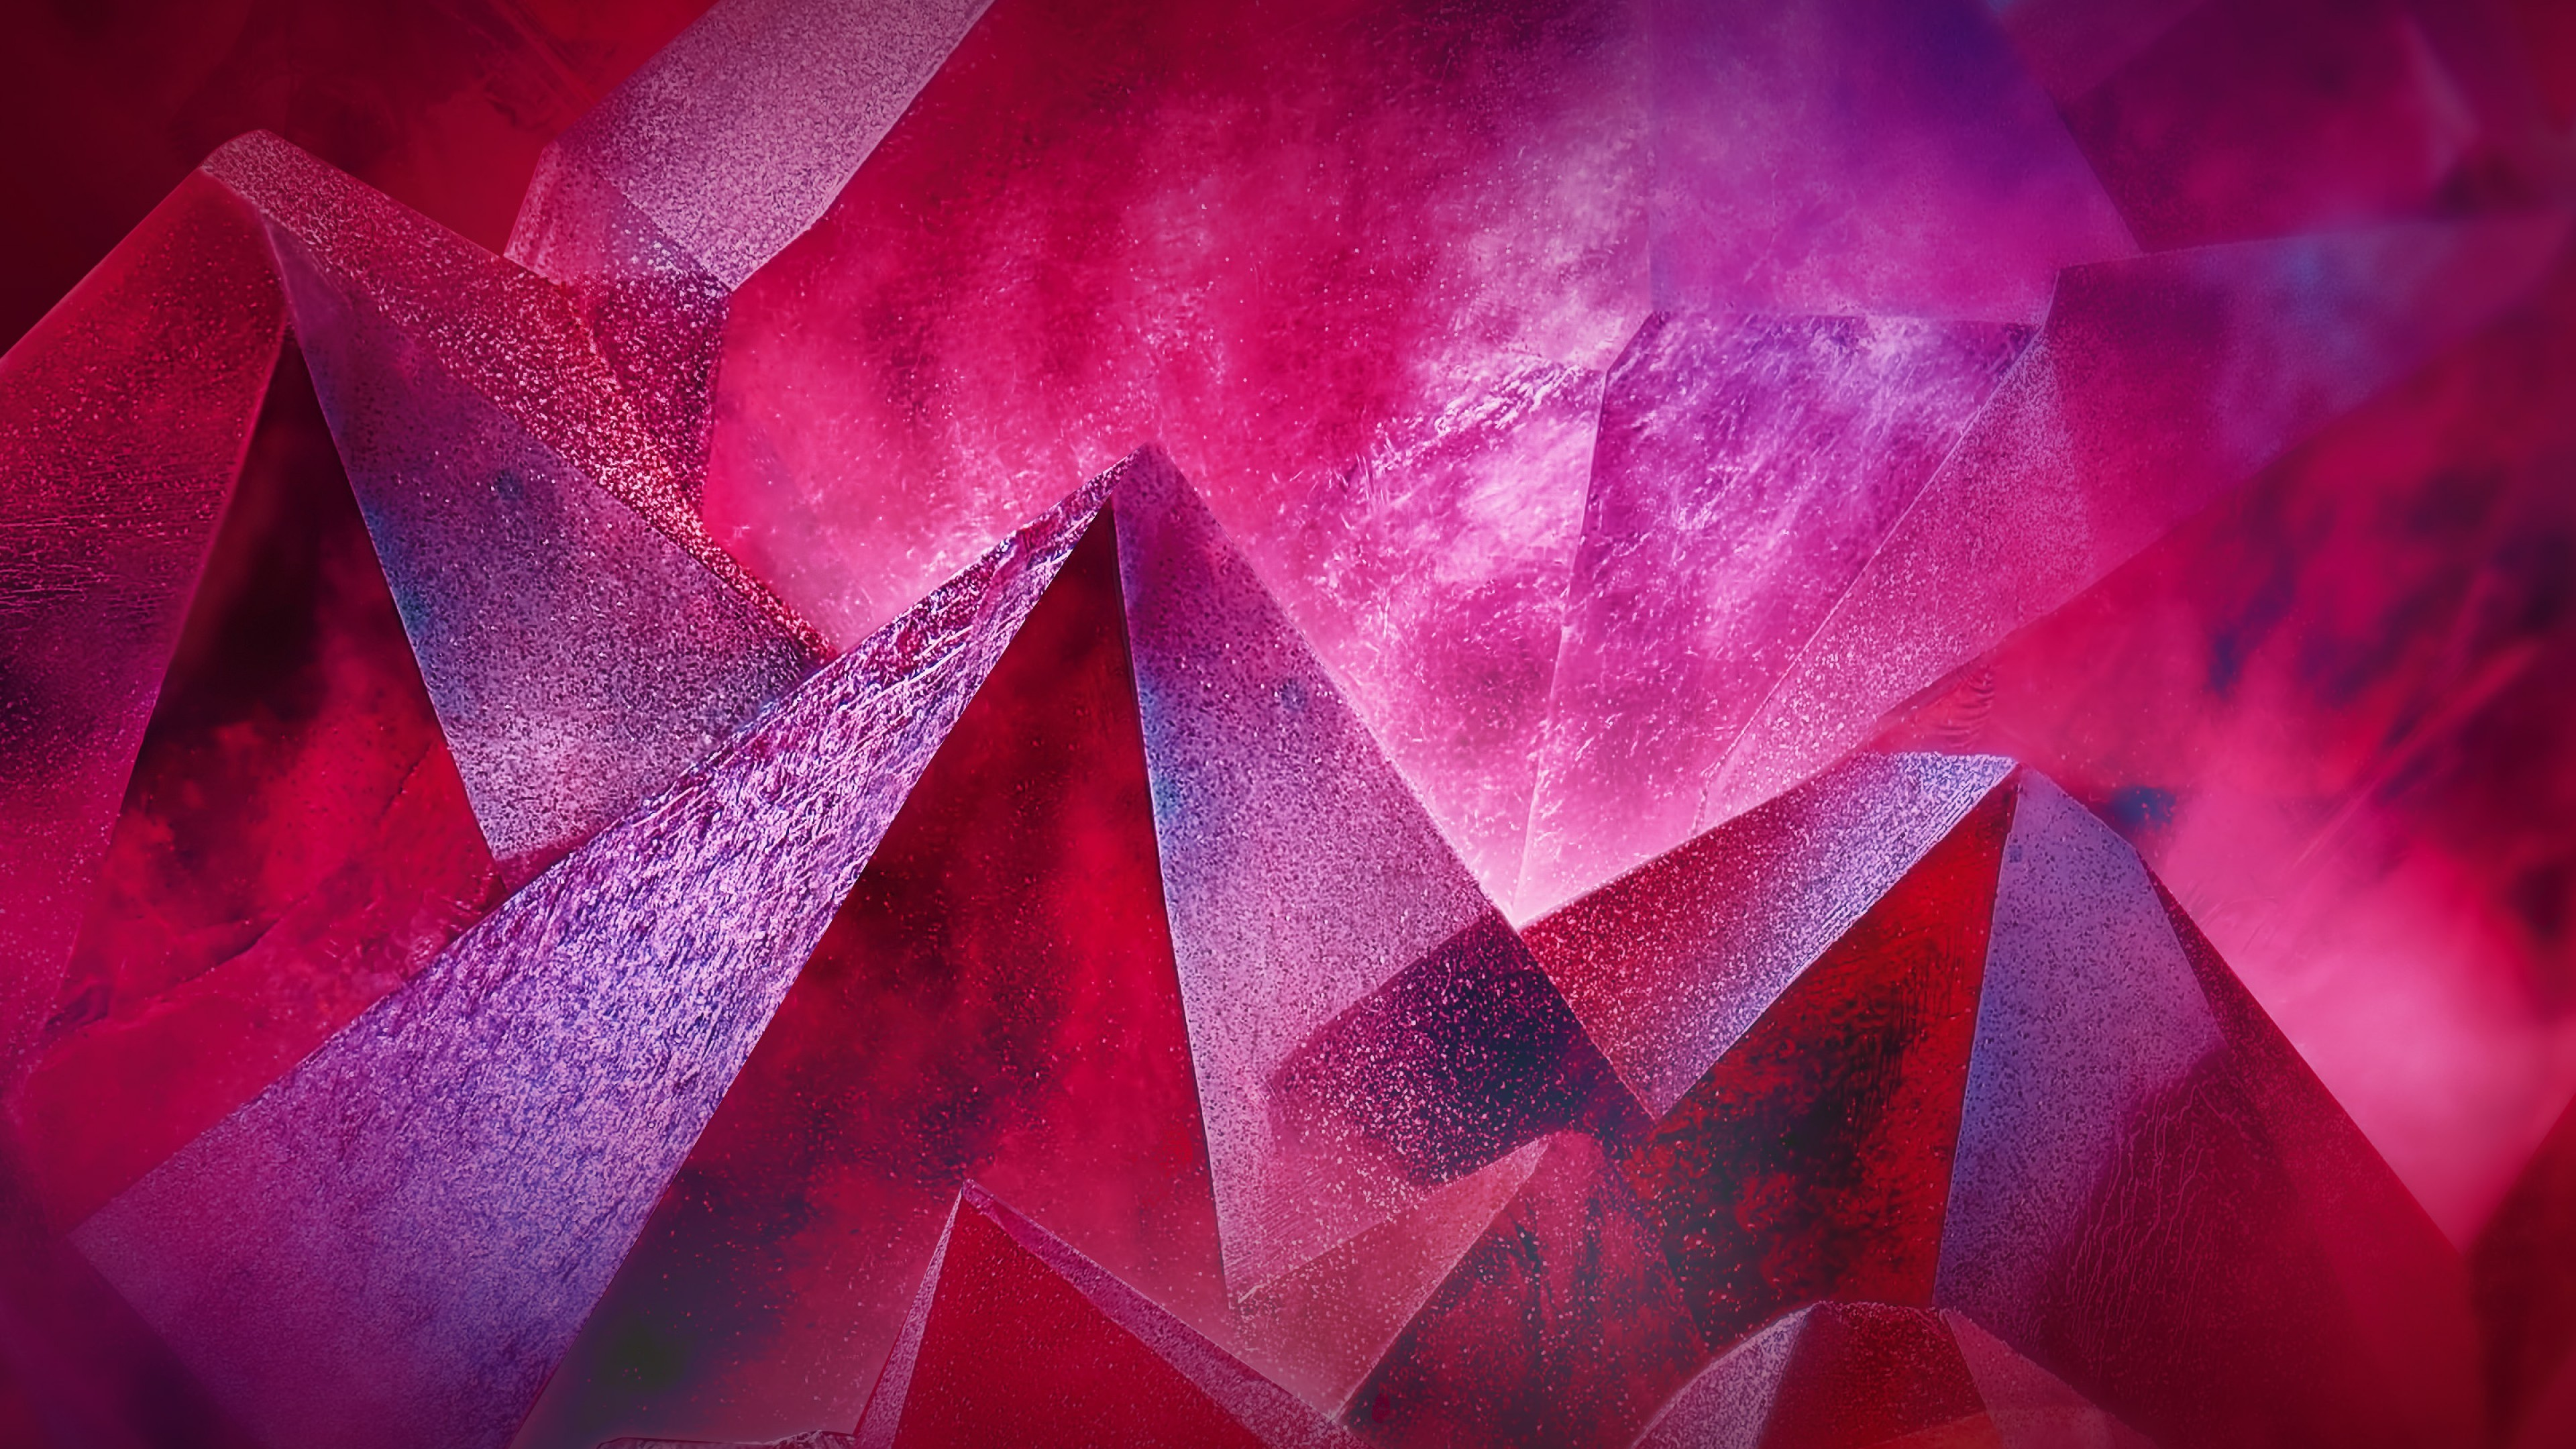 Wallpaper pink, abstract, 4k, Abstract #15559